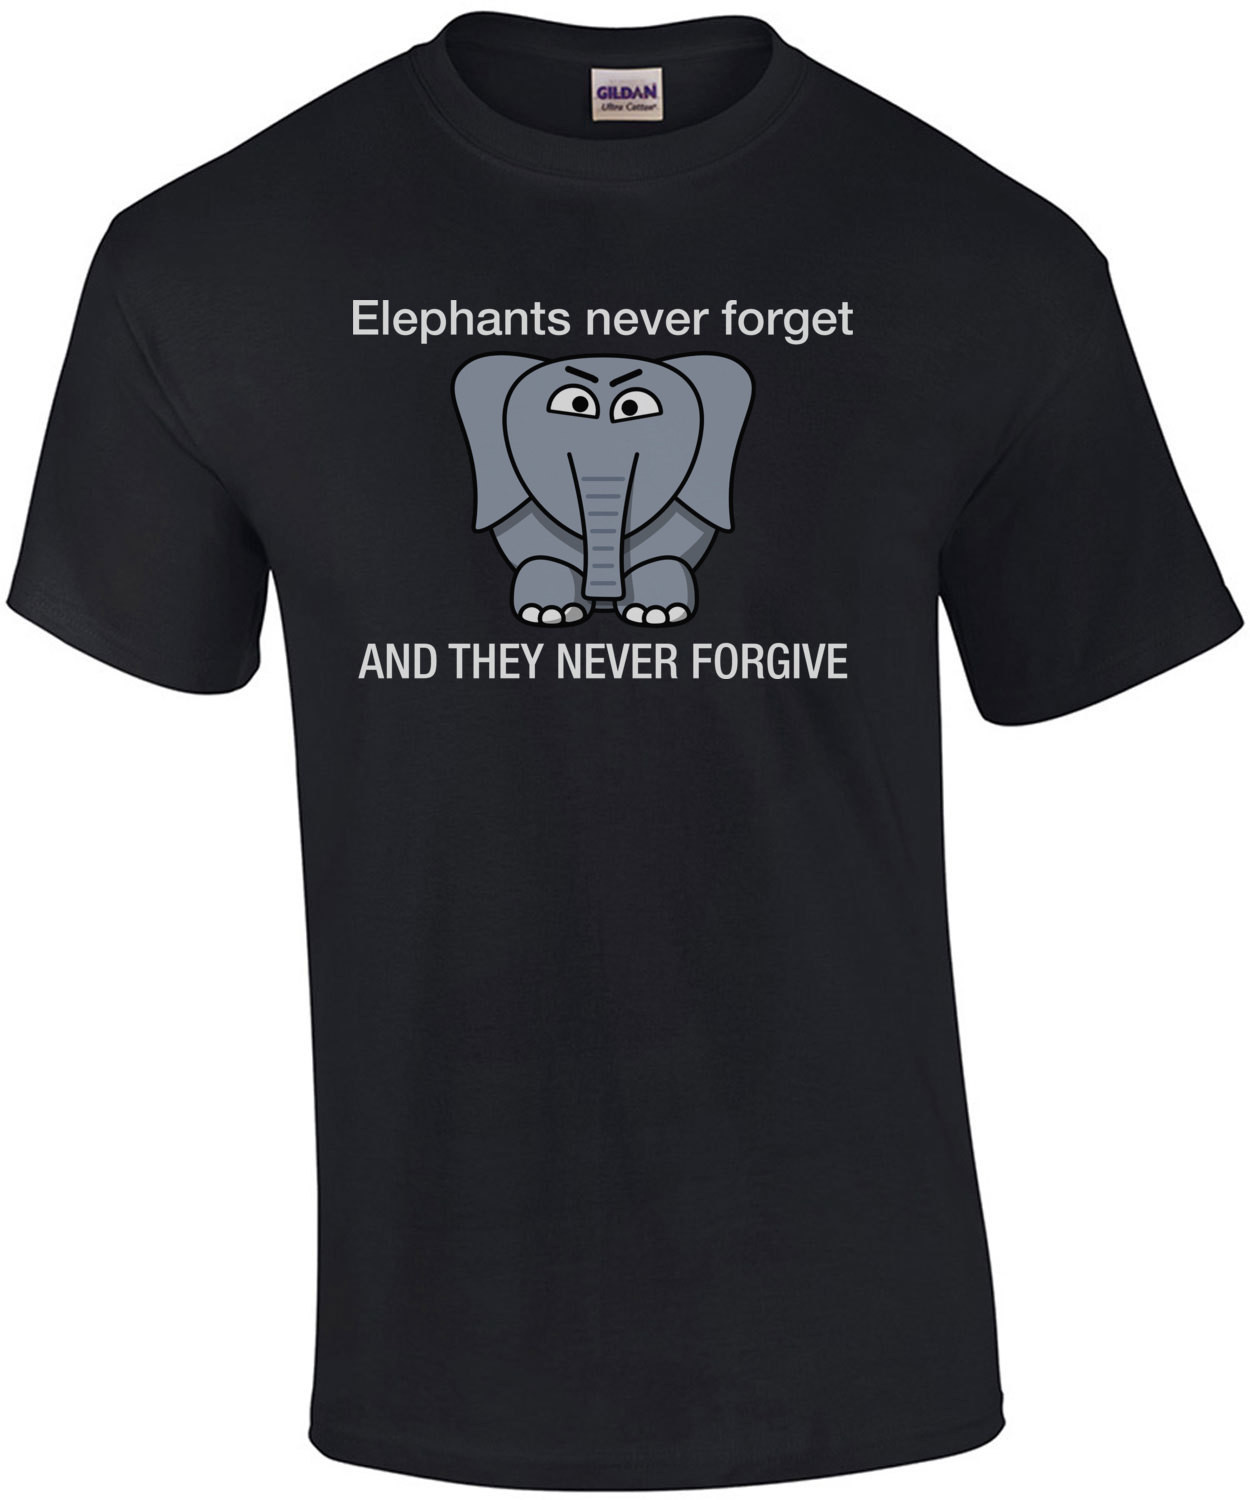 Elephants never forget and they never forgive t-shirt